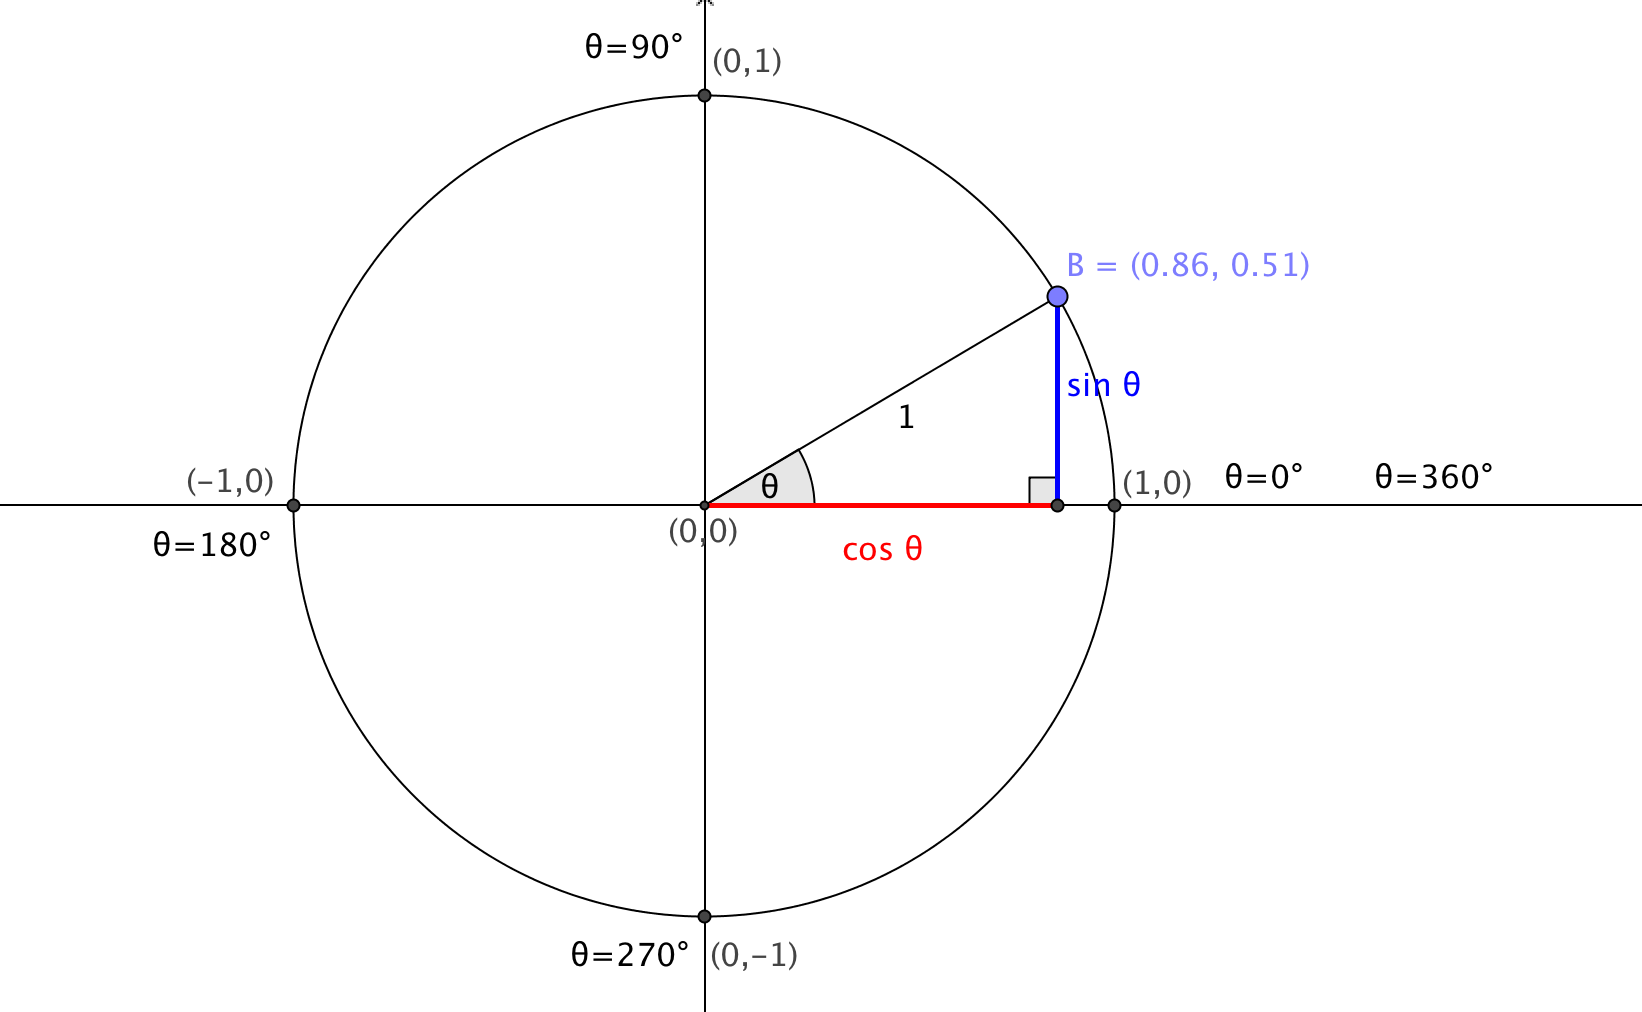 Gcse maths circles powerpoint 20 lessons by bcooper87 trigonometry unit circle investigation with dynamic interactive diagram and accompanying explanation pooptronica